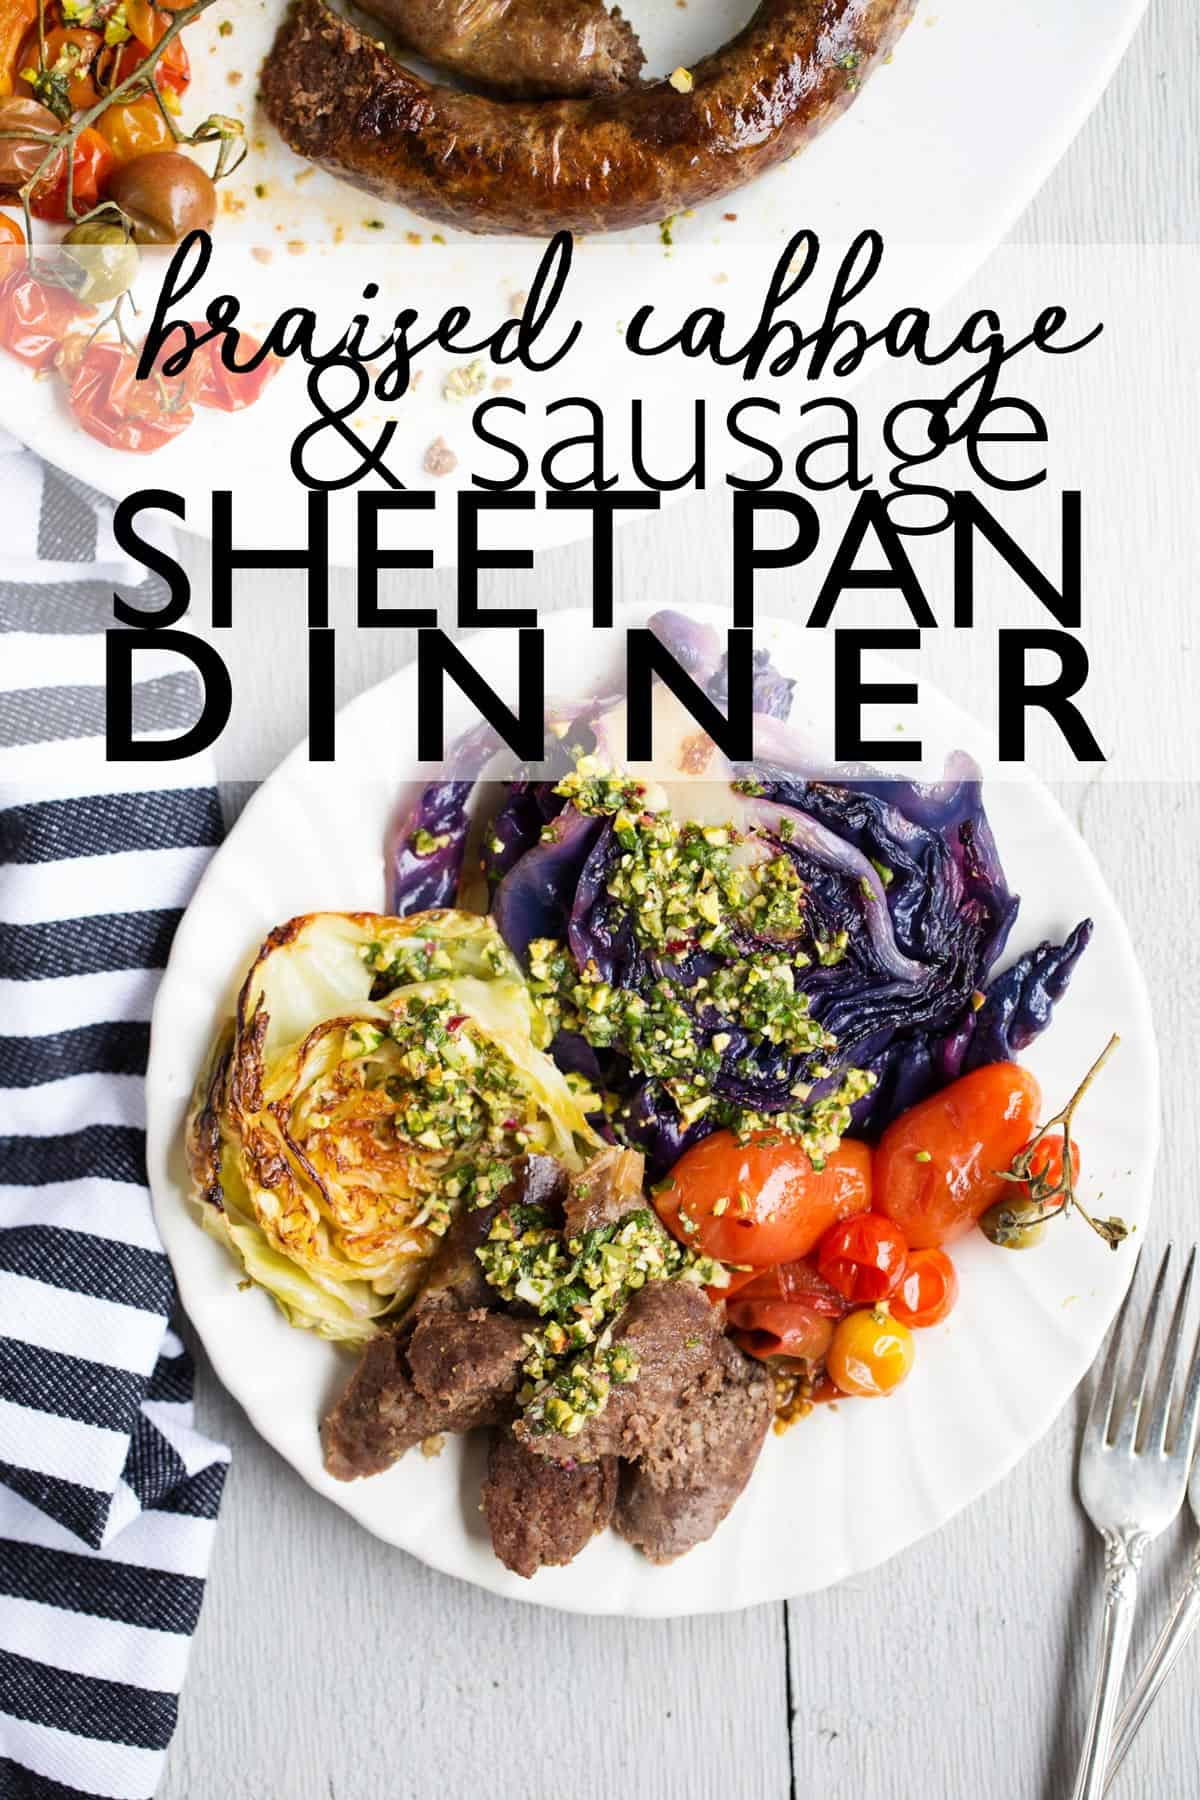 Braised cabbage and sausage sheet pan meal is an easy delicious and quick dinner recipe!